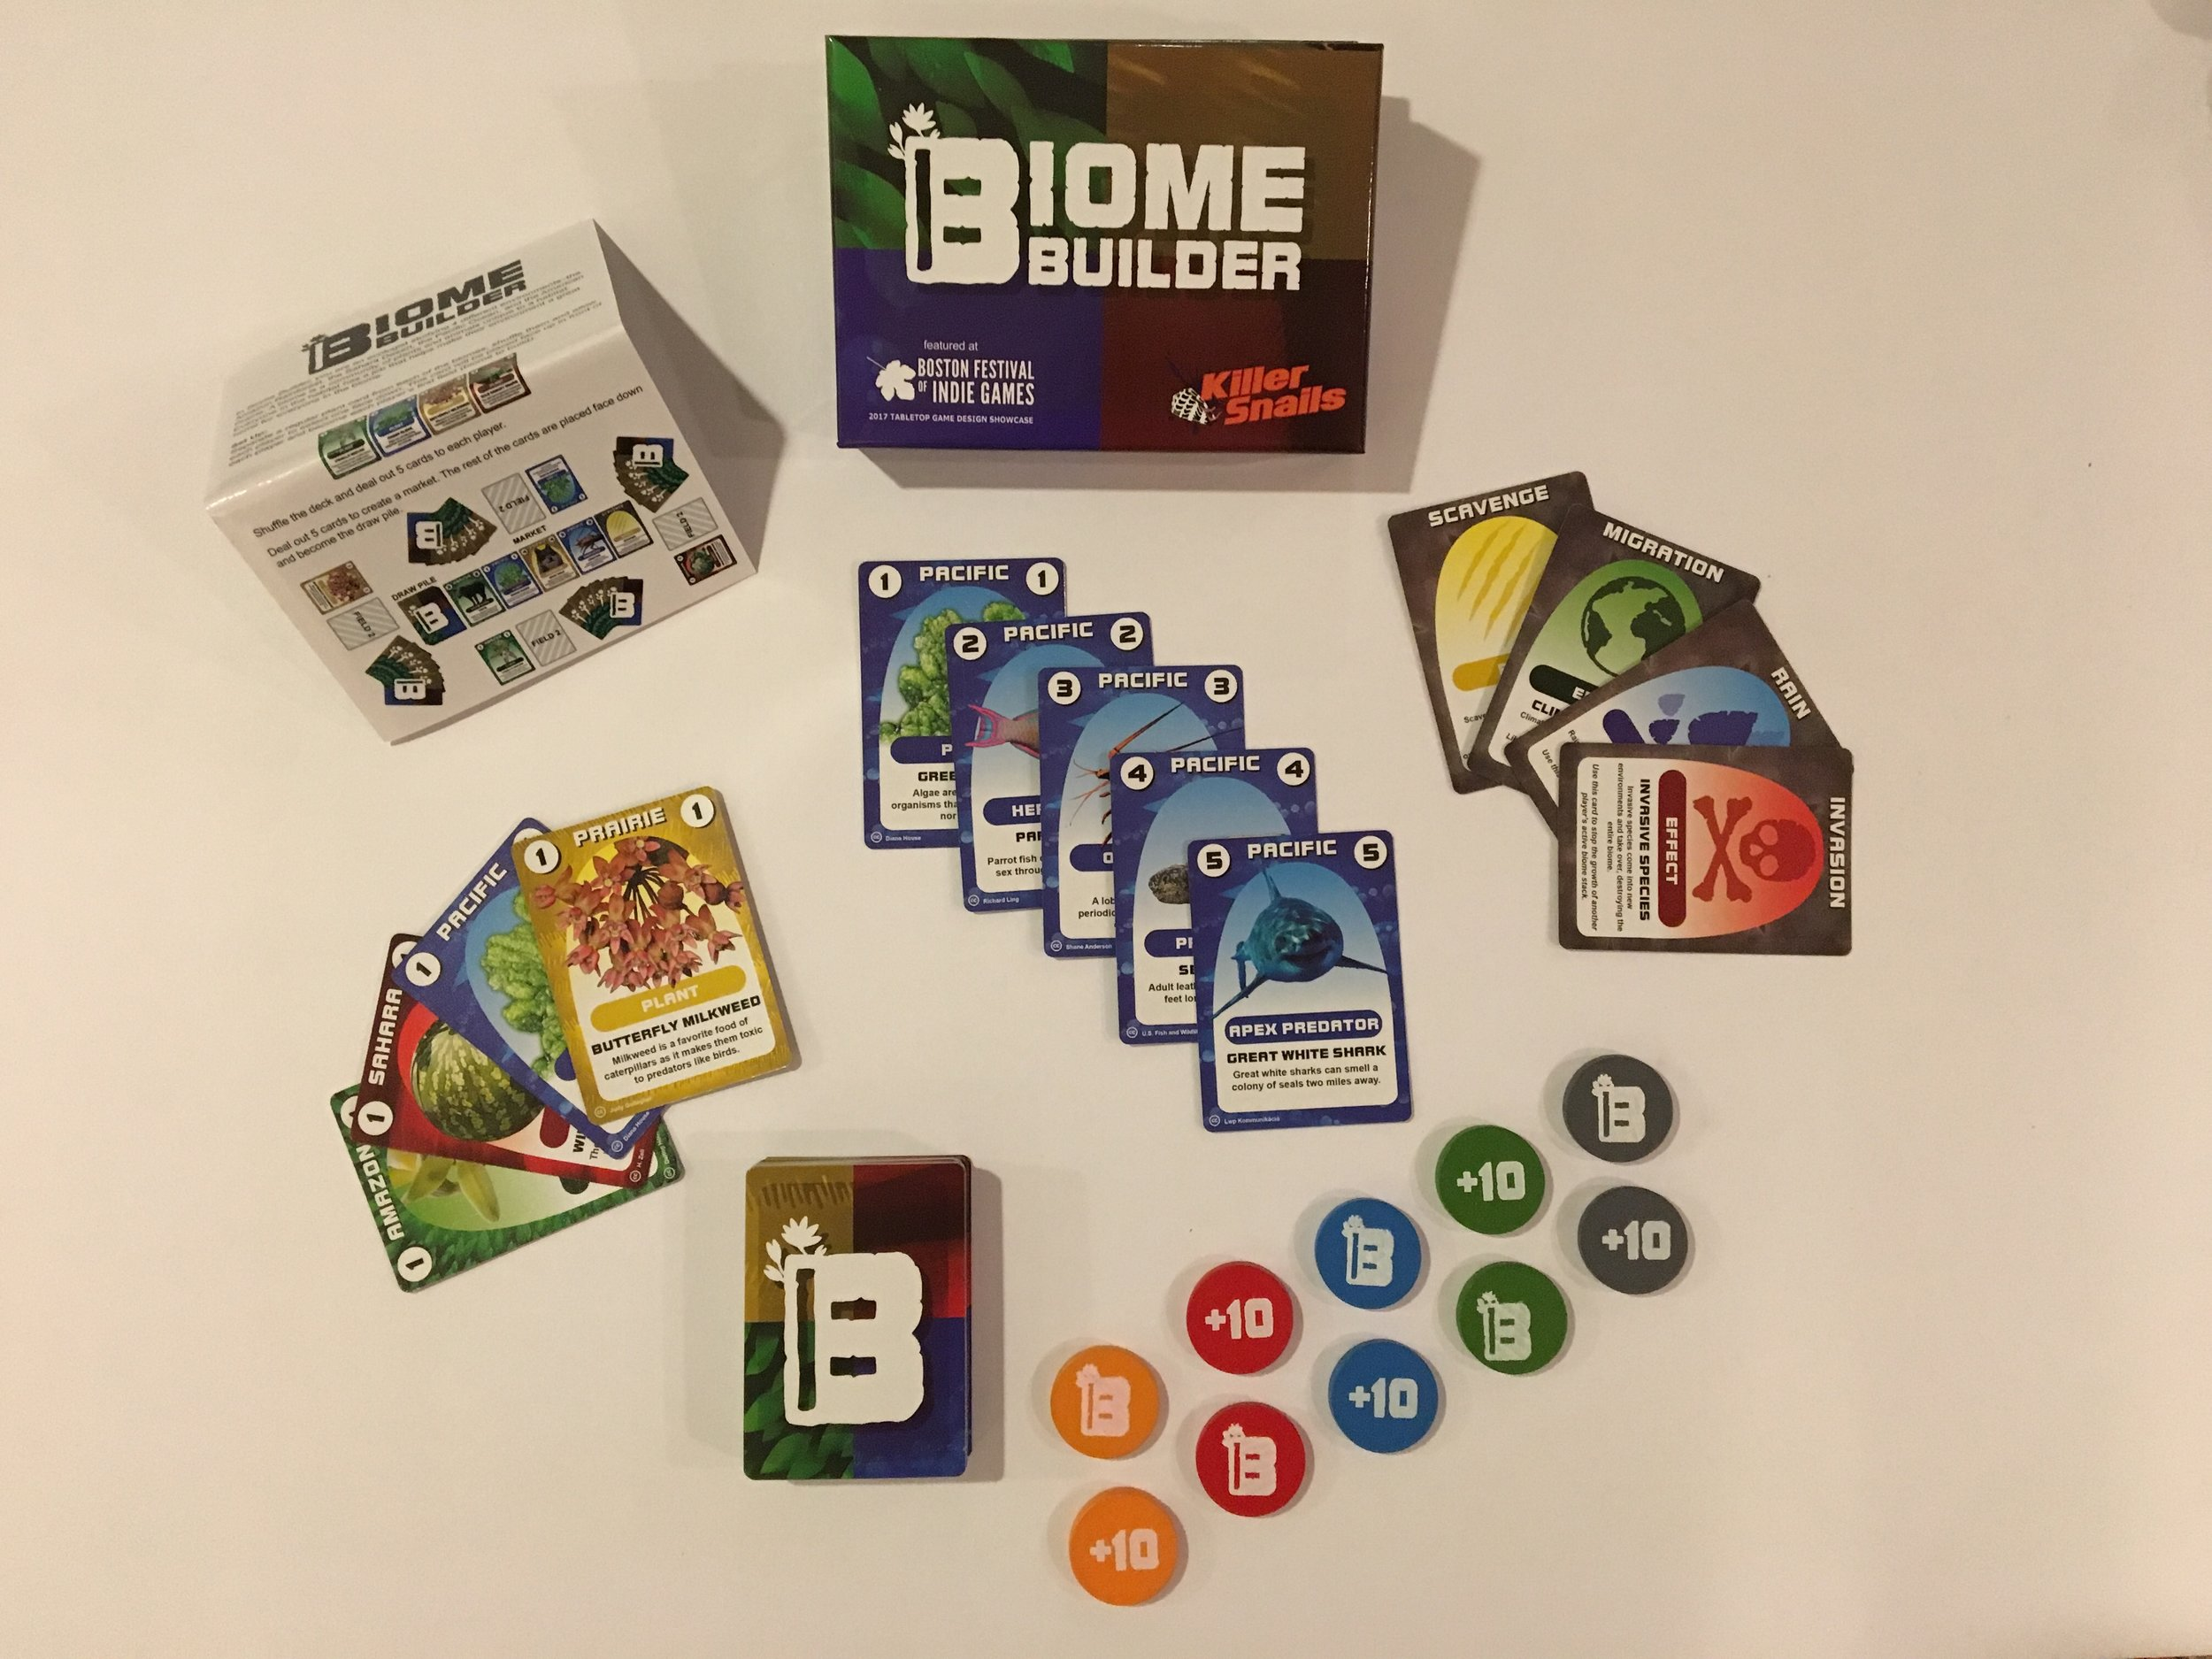 Biome Builder looks lovely and we are so excited!